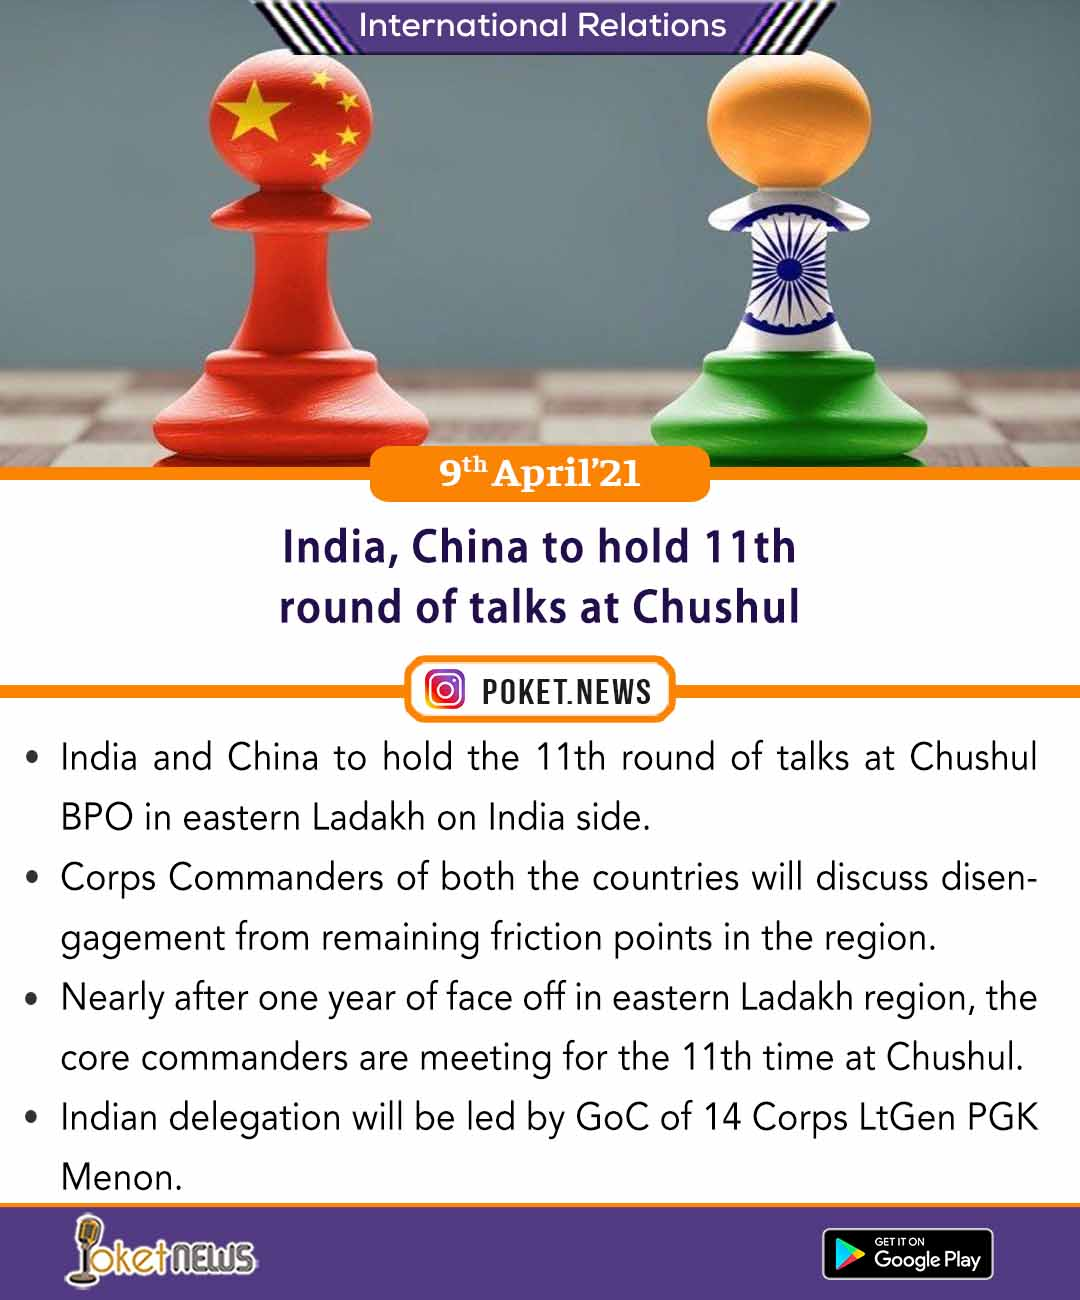 India, China to hold 11th round of talks at Chushul